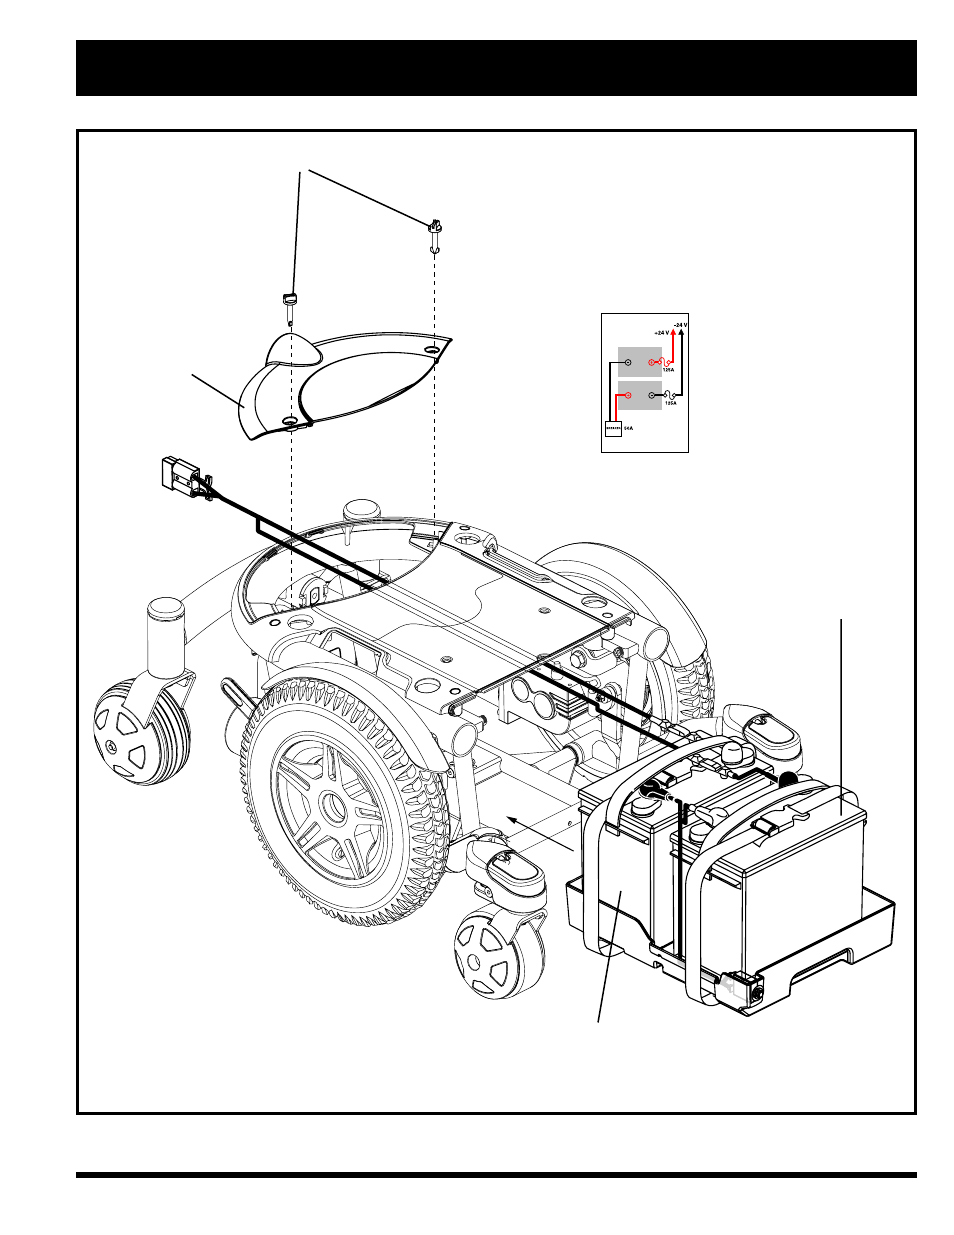 pride mobility jazzy 600 xl user manual